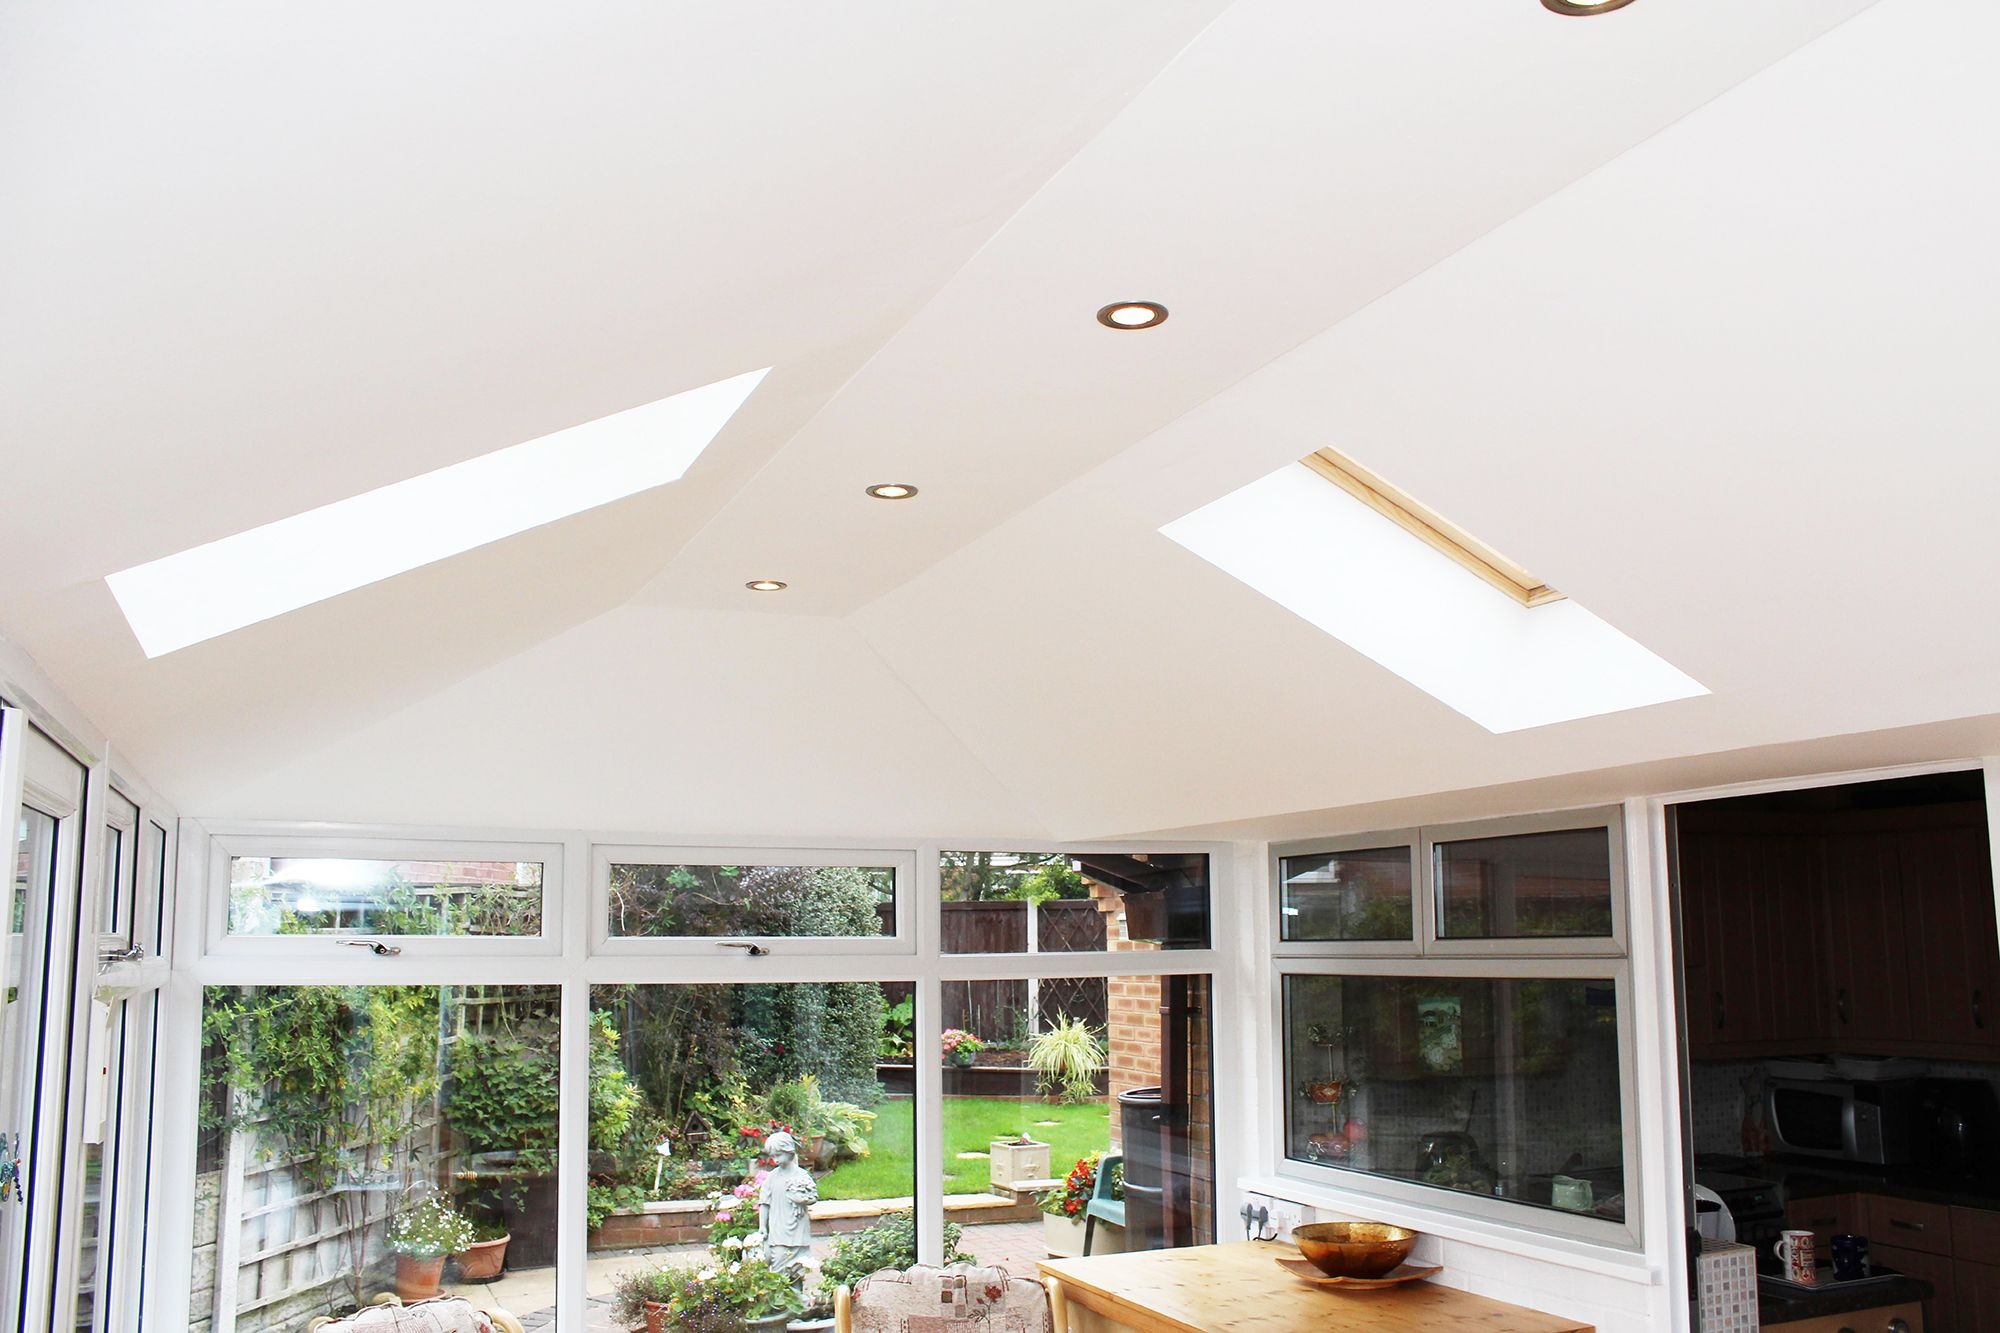 Internal View Of Supalite Tiled Conservatory Roofing System With Two High Quality Dekea Roof Vents Installed Ontop Of Whi Roofing Systems Roofing Conservatory